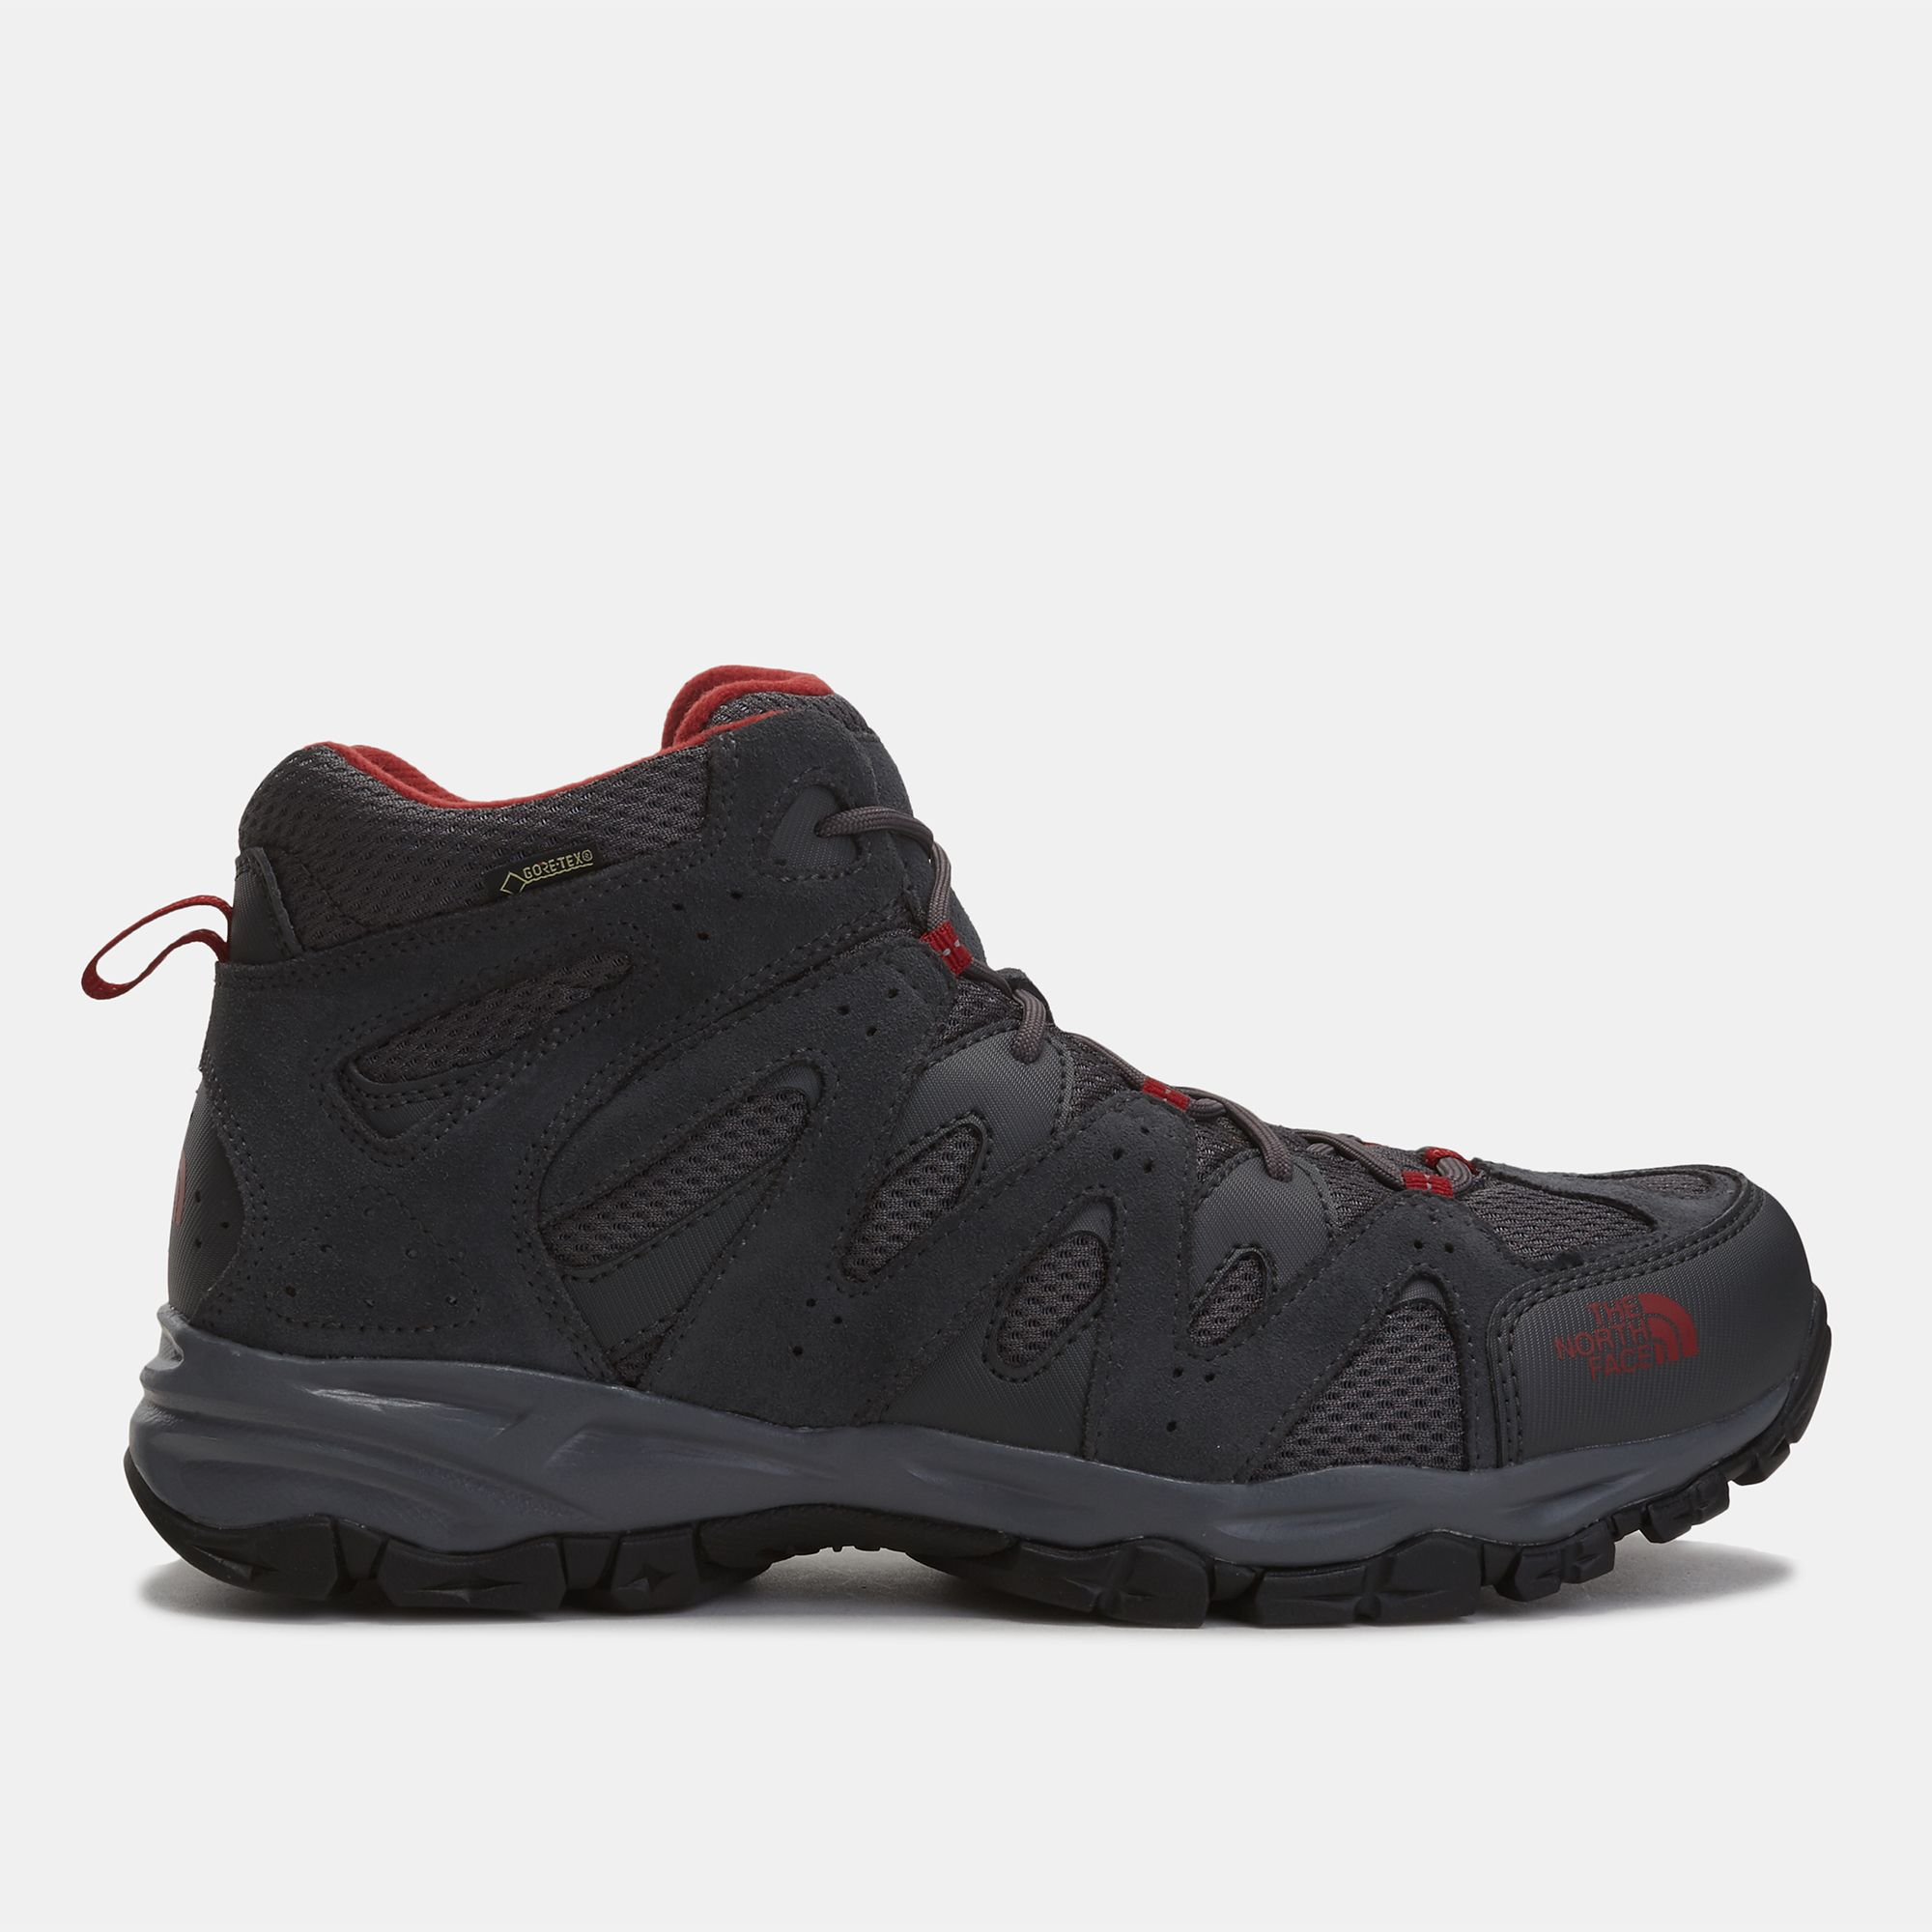 95e10ea83 Shop The North Face Storm Hike GoreTex Shoe for Mens by The North ...